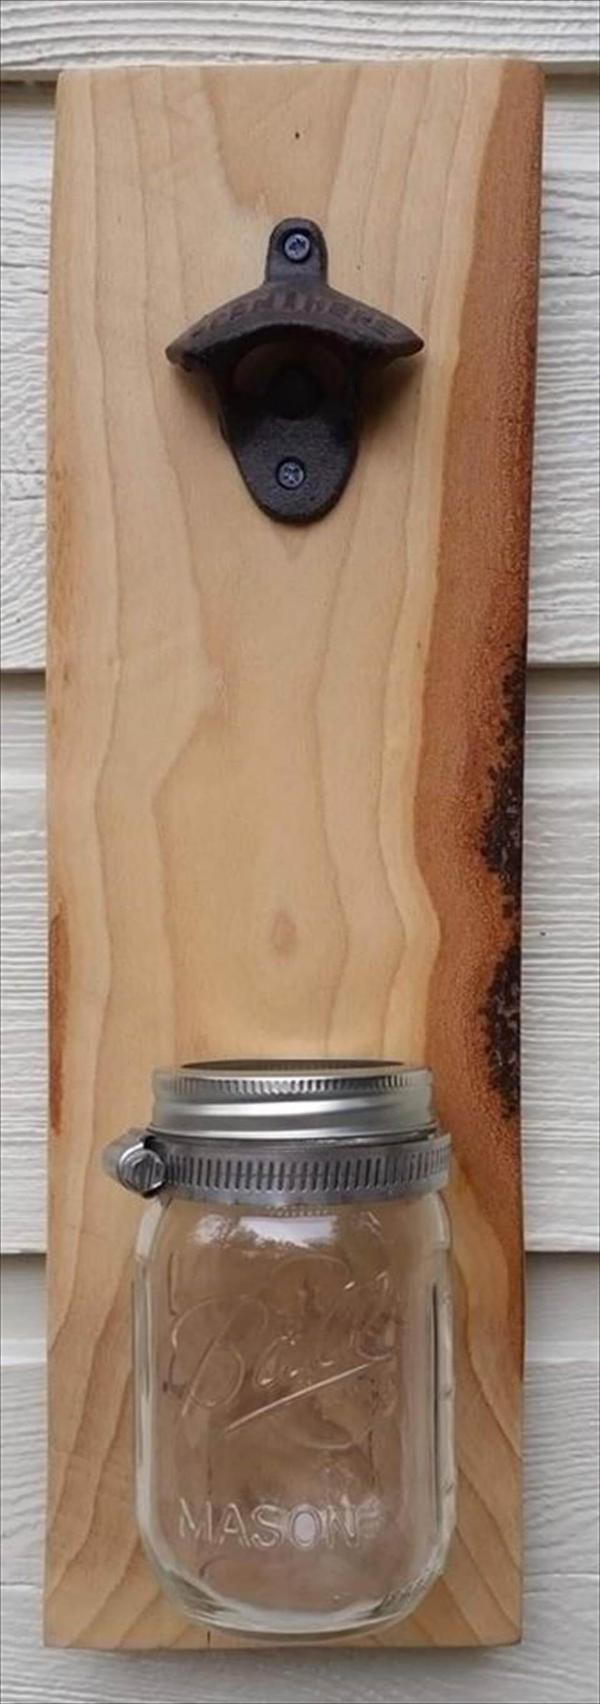 Wooden pallet bottle opener with cap catcher